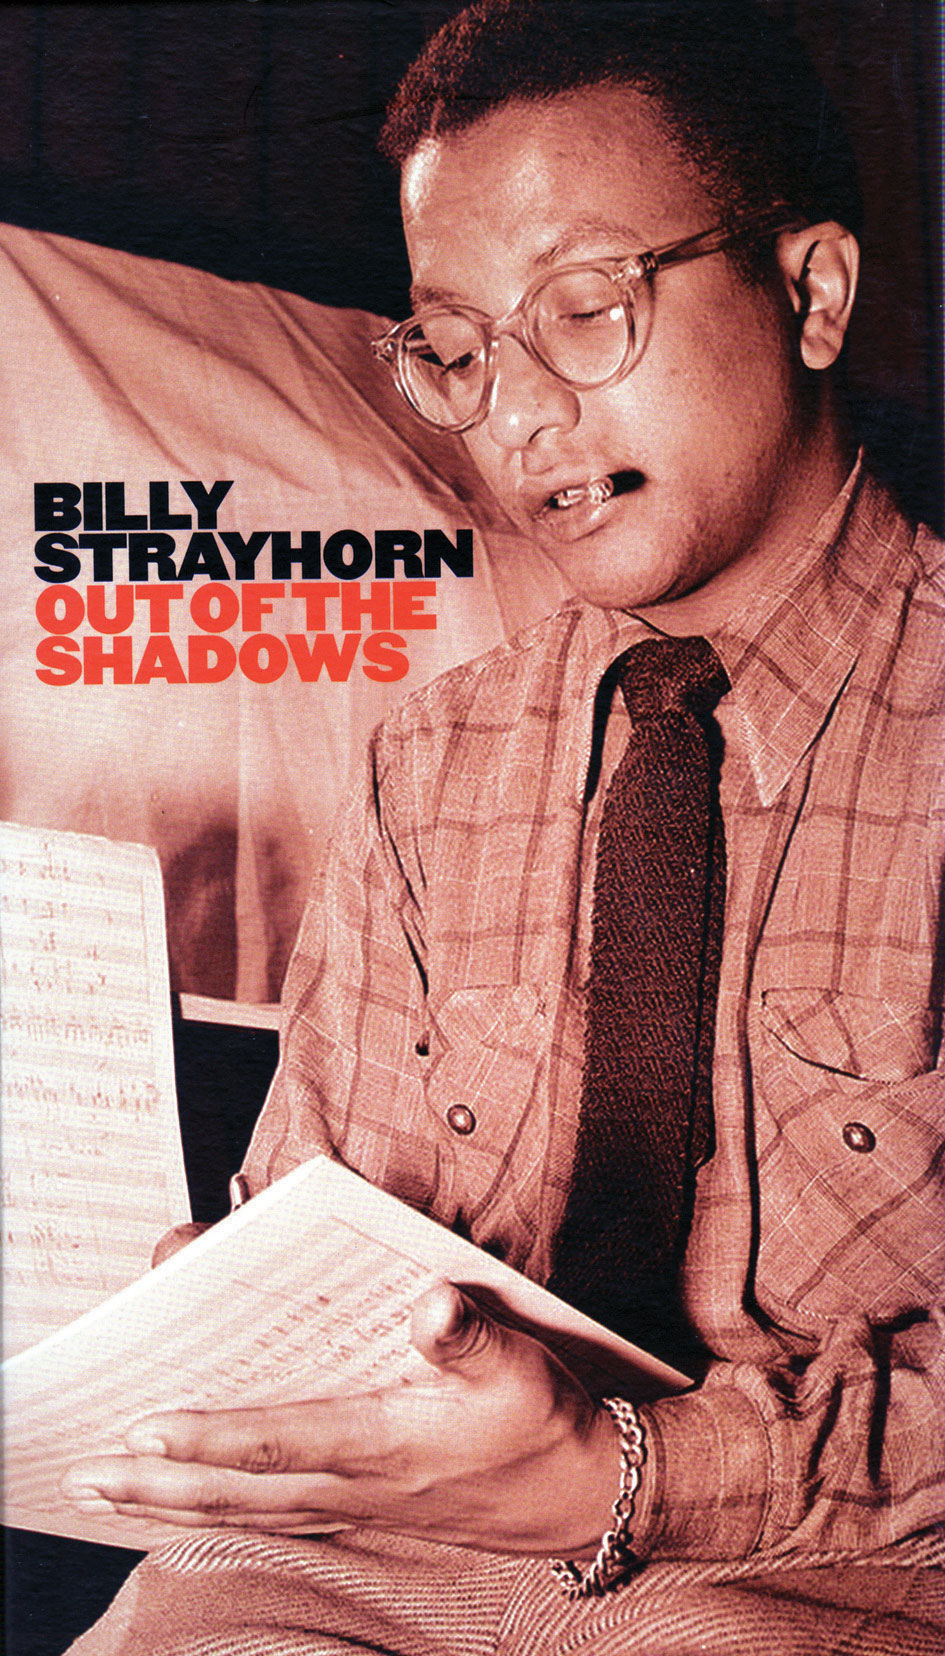 BILLY STRAYHORN - Out Of The Shadows cover